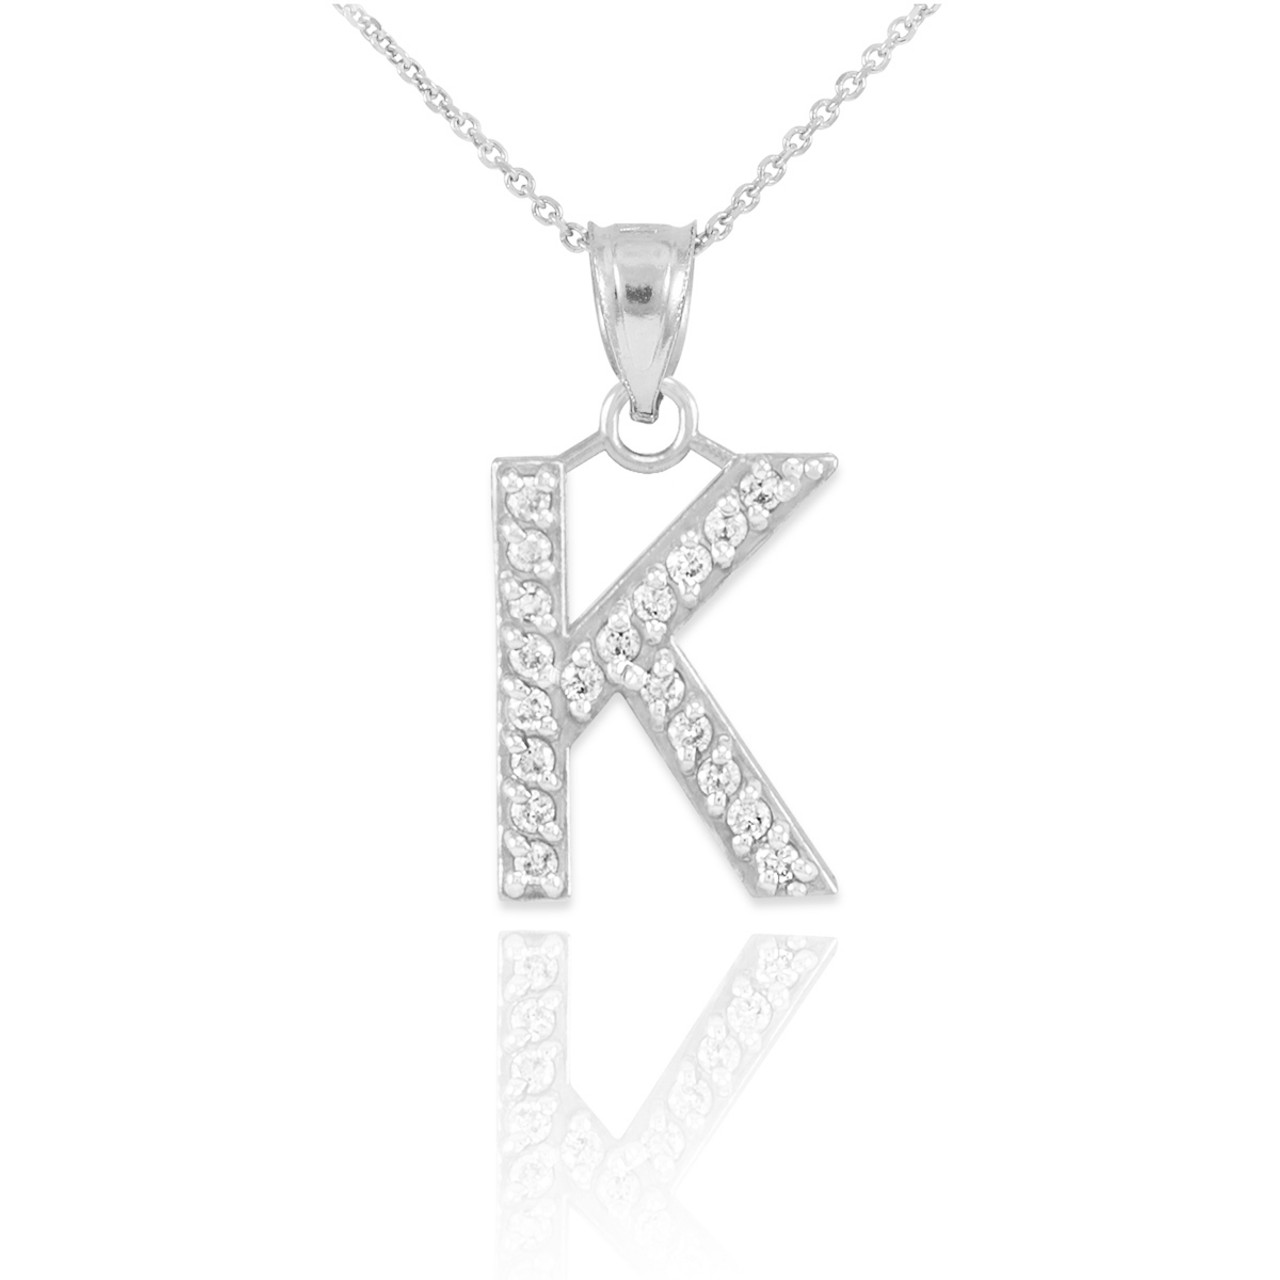 Sterling silver letter k cz initial pendant necklace aloadofball Images